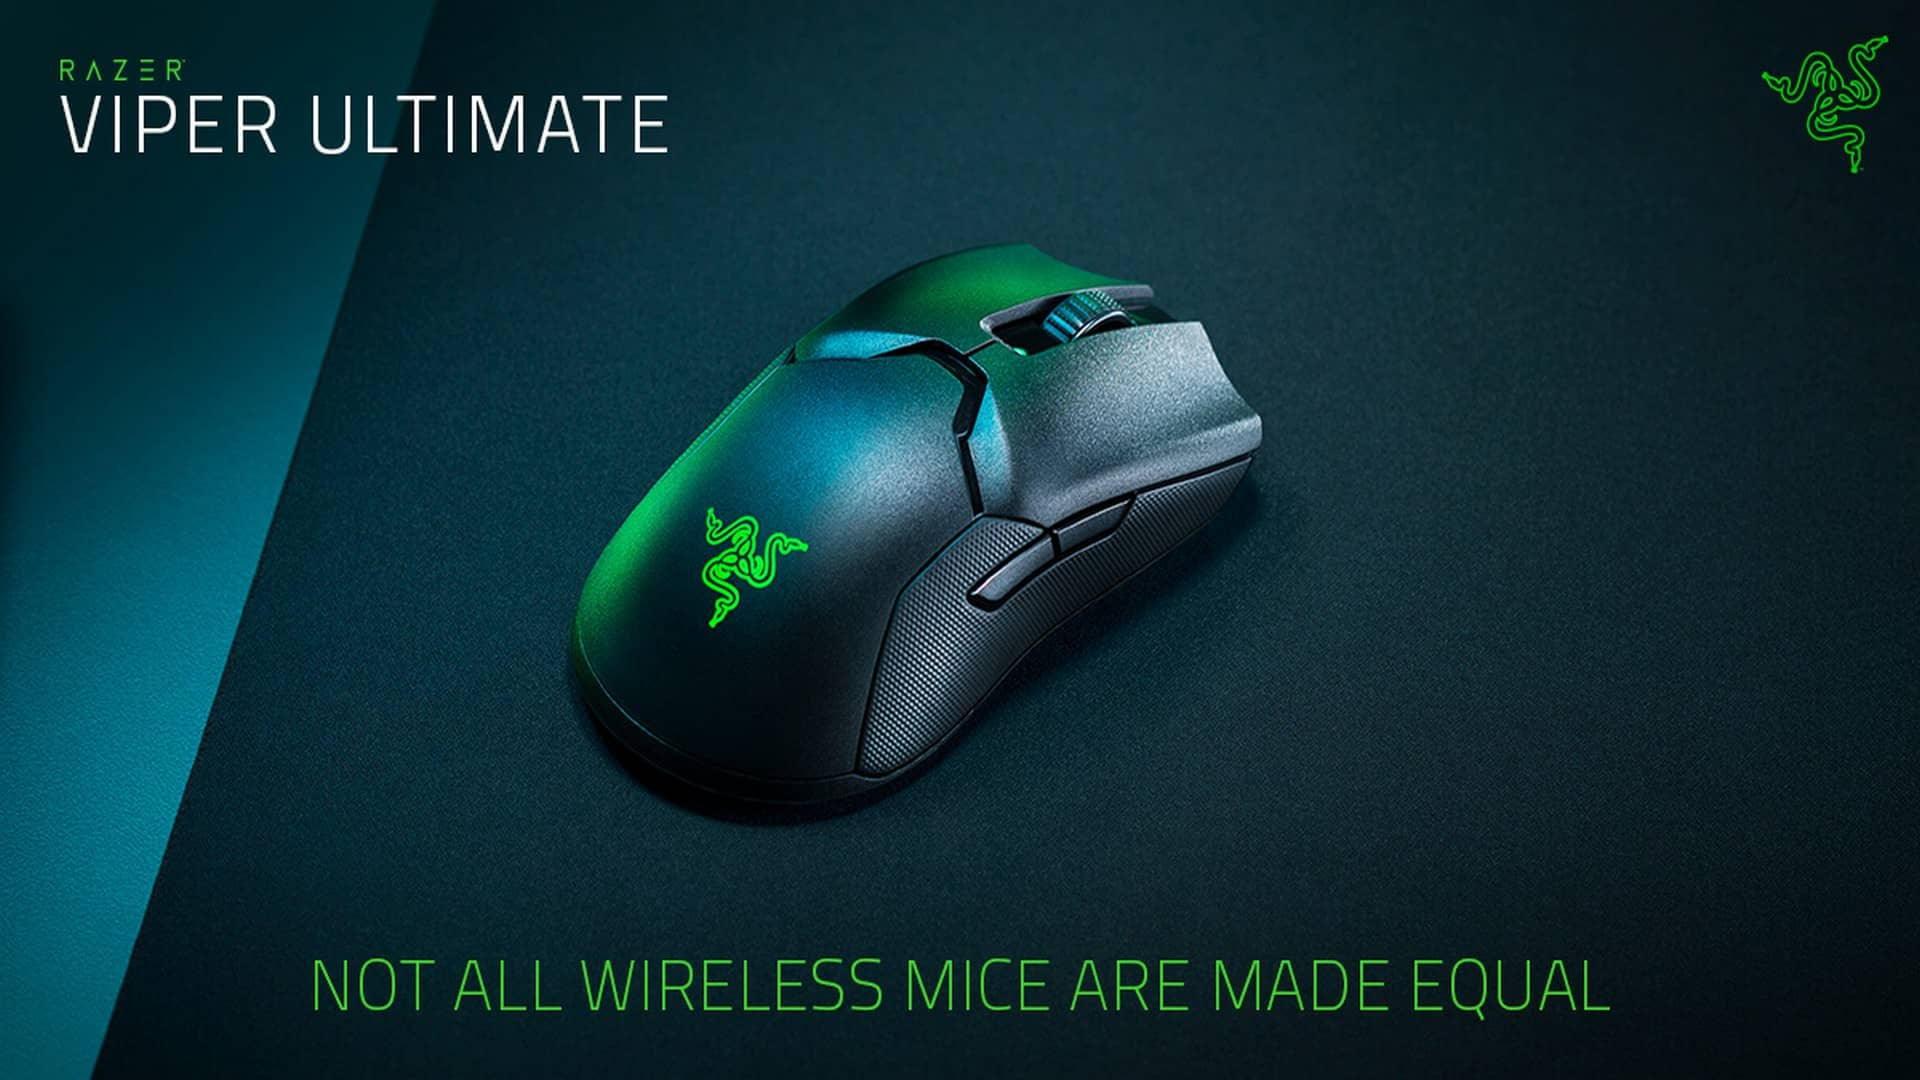 Dominate At Hyperspeed With The Razer Viper Ultimate Wireless Gaming Mouse